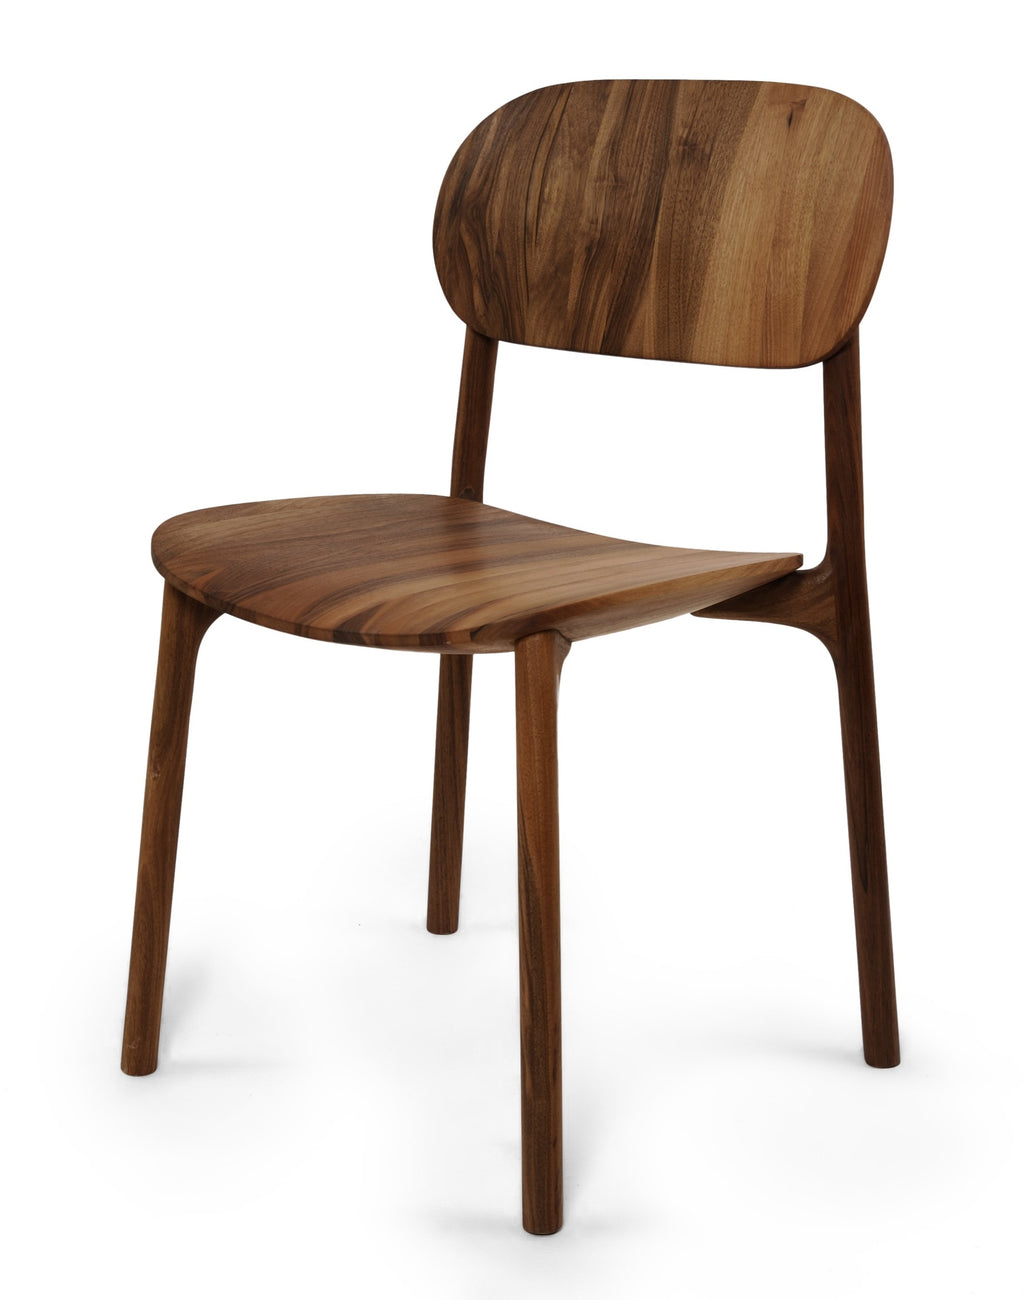 Unna Chair